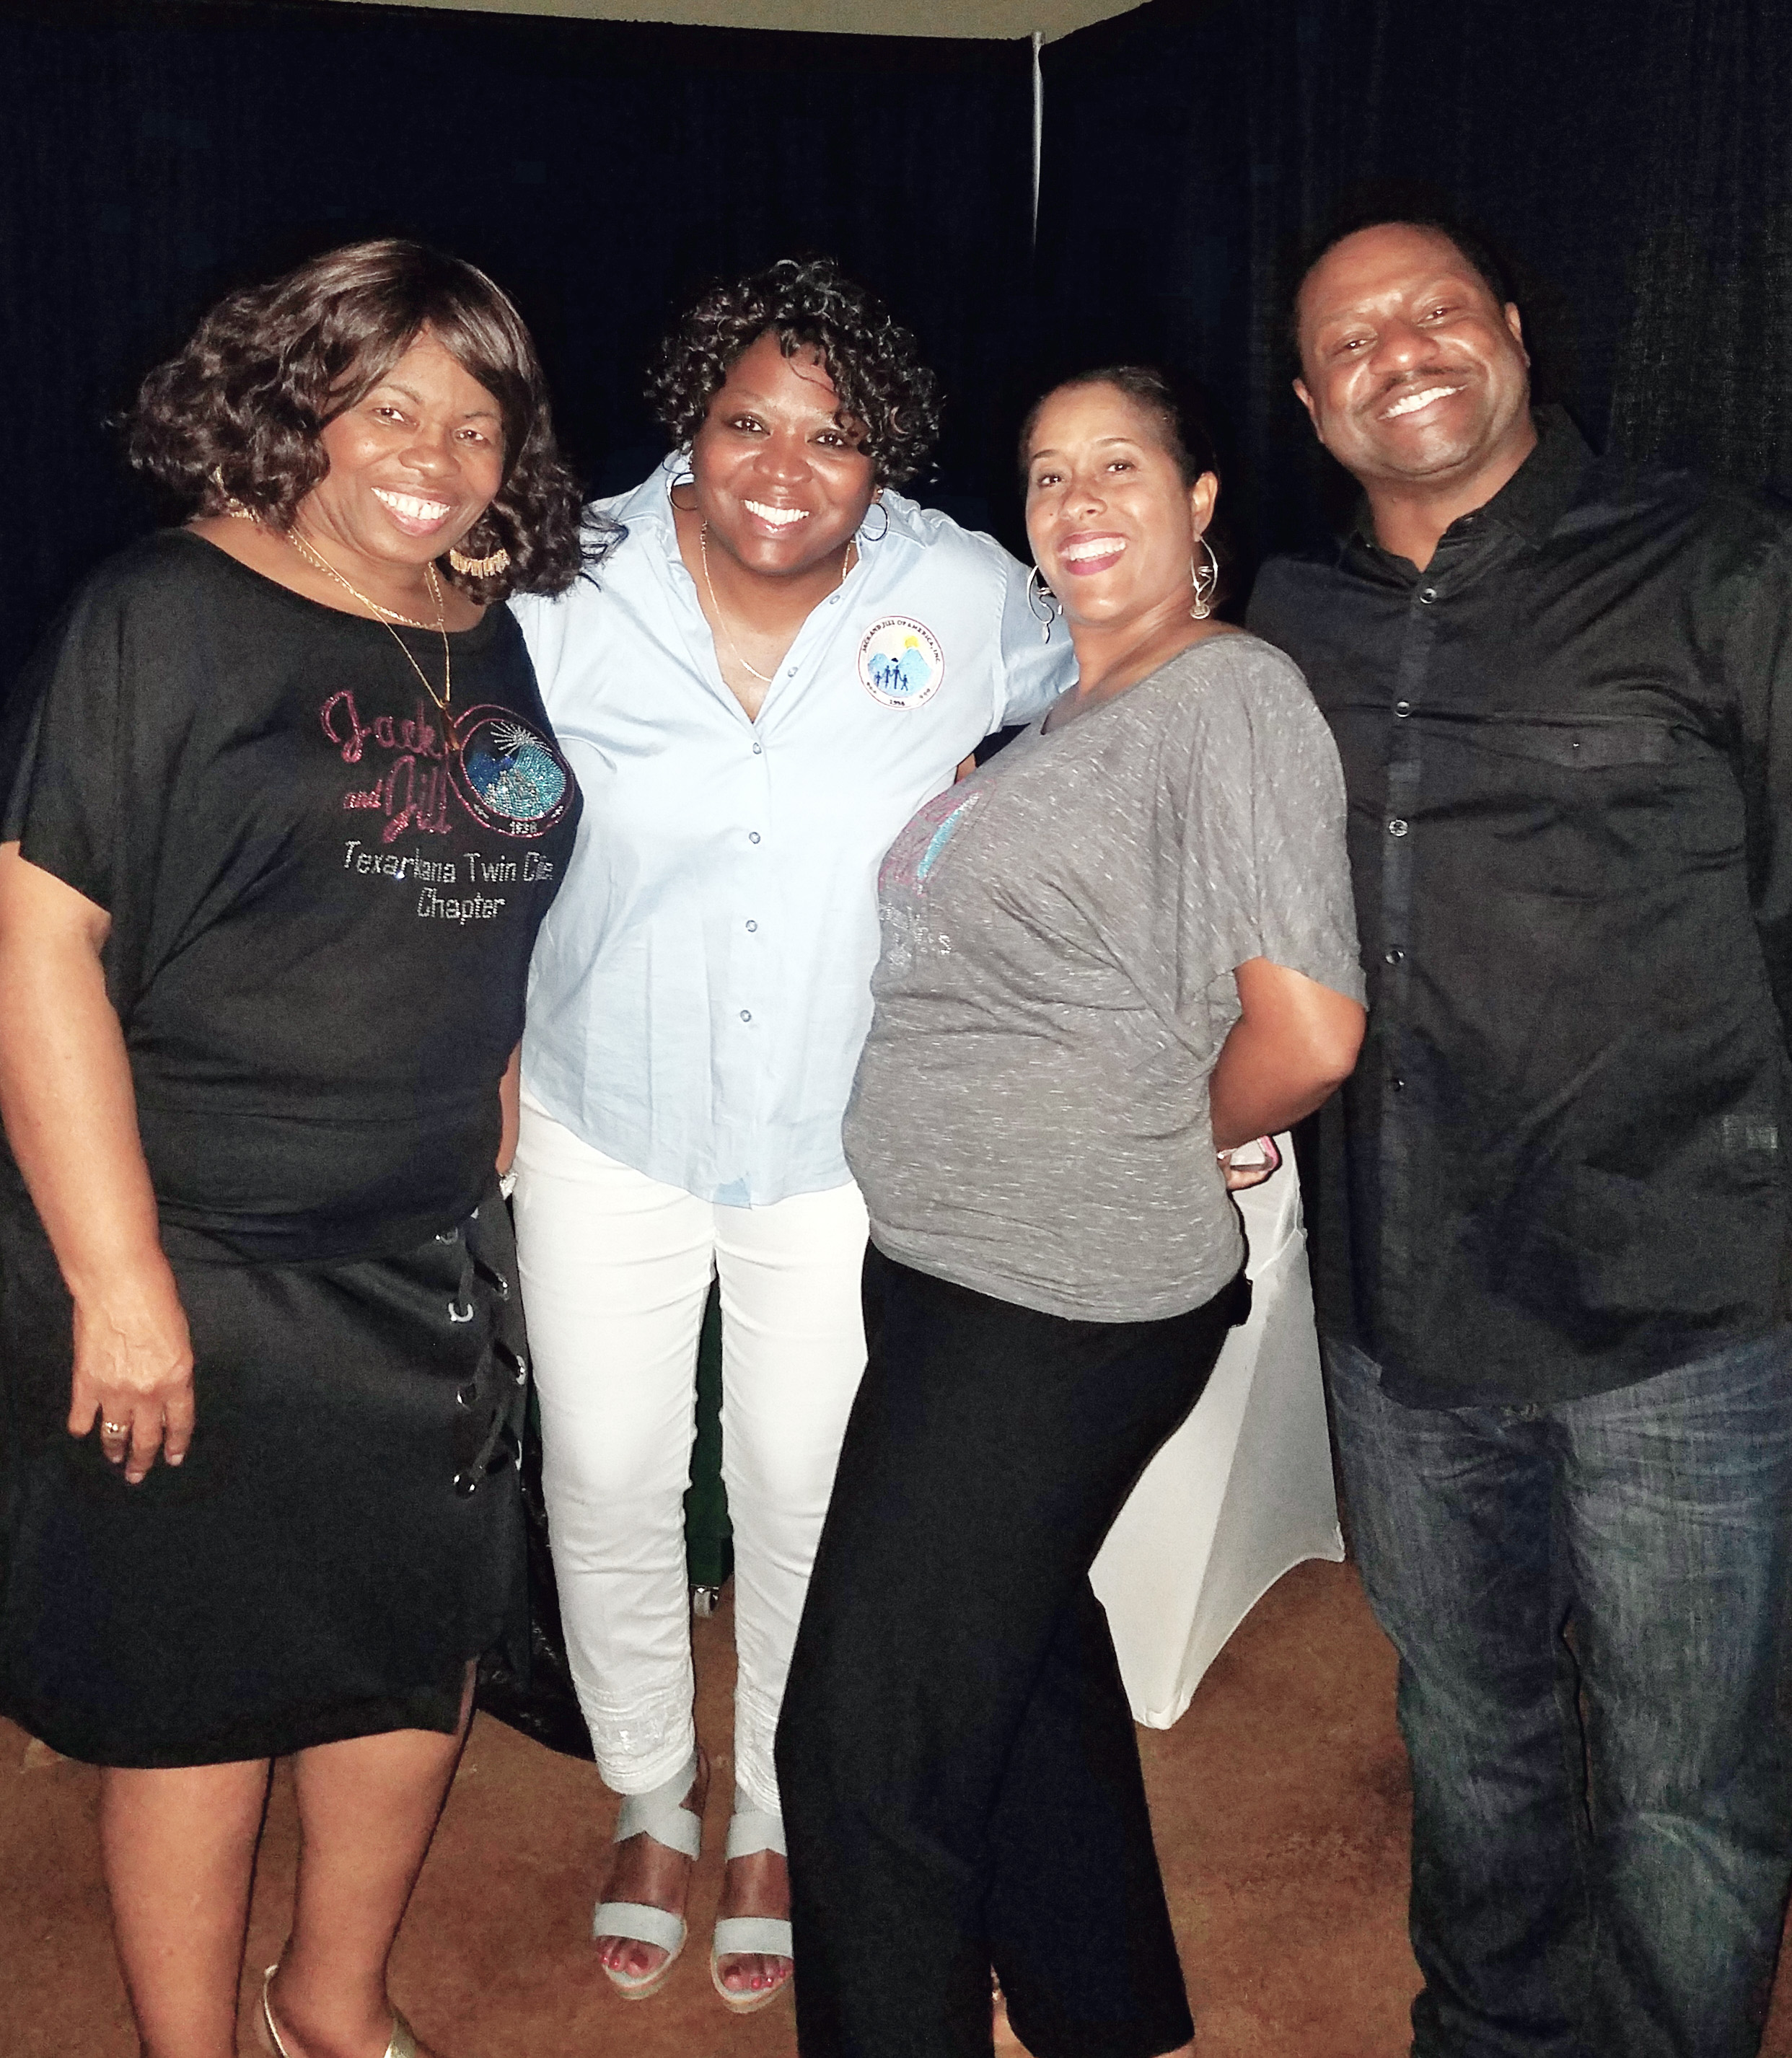 Maxine Crittenden and Dr. Jacqueline O'Donald with Treva and Dr. Kenneth West